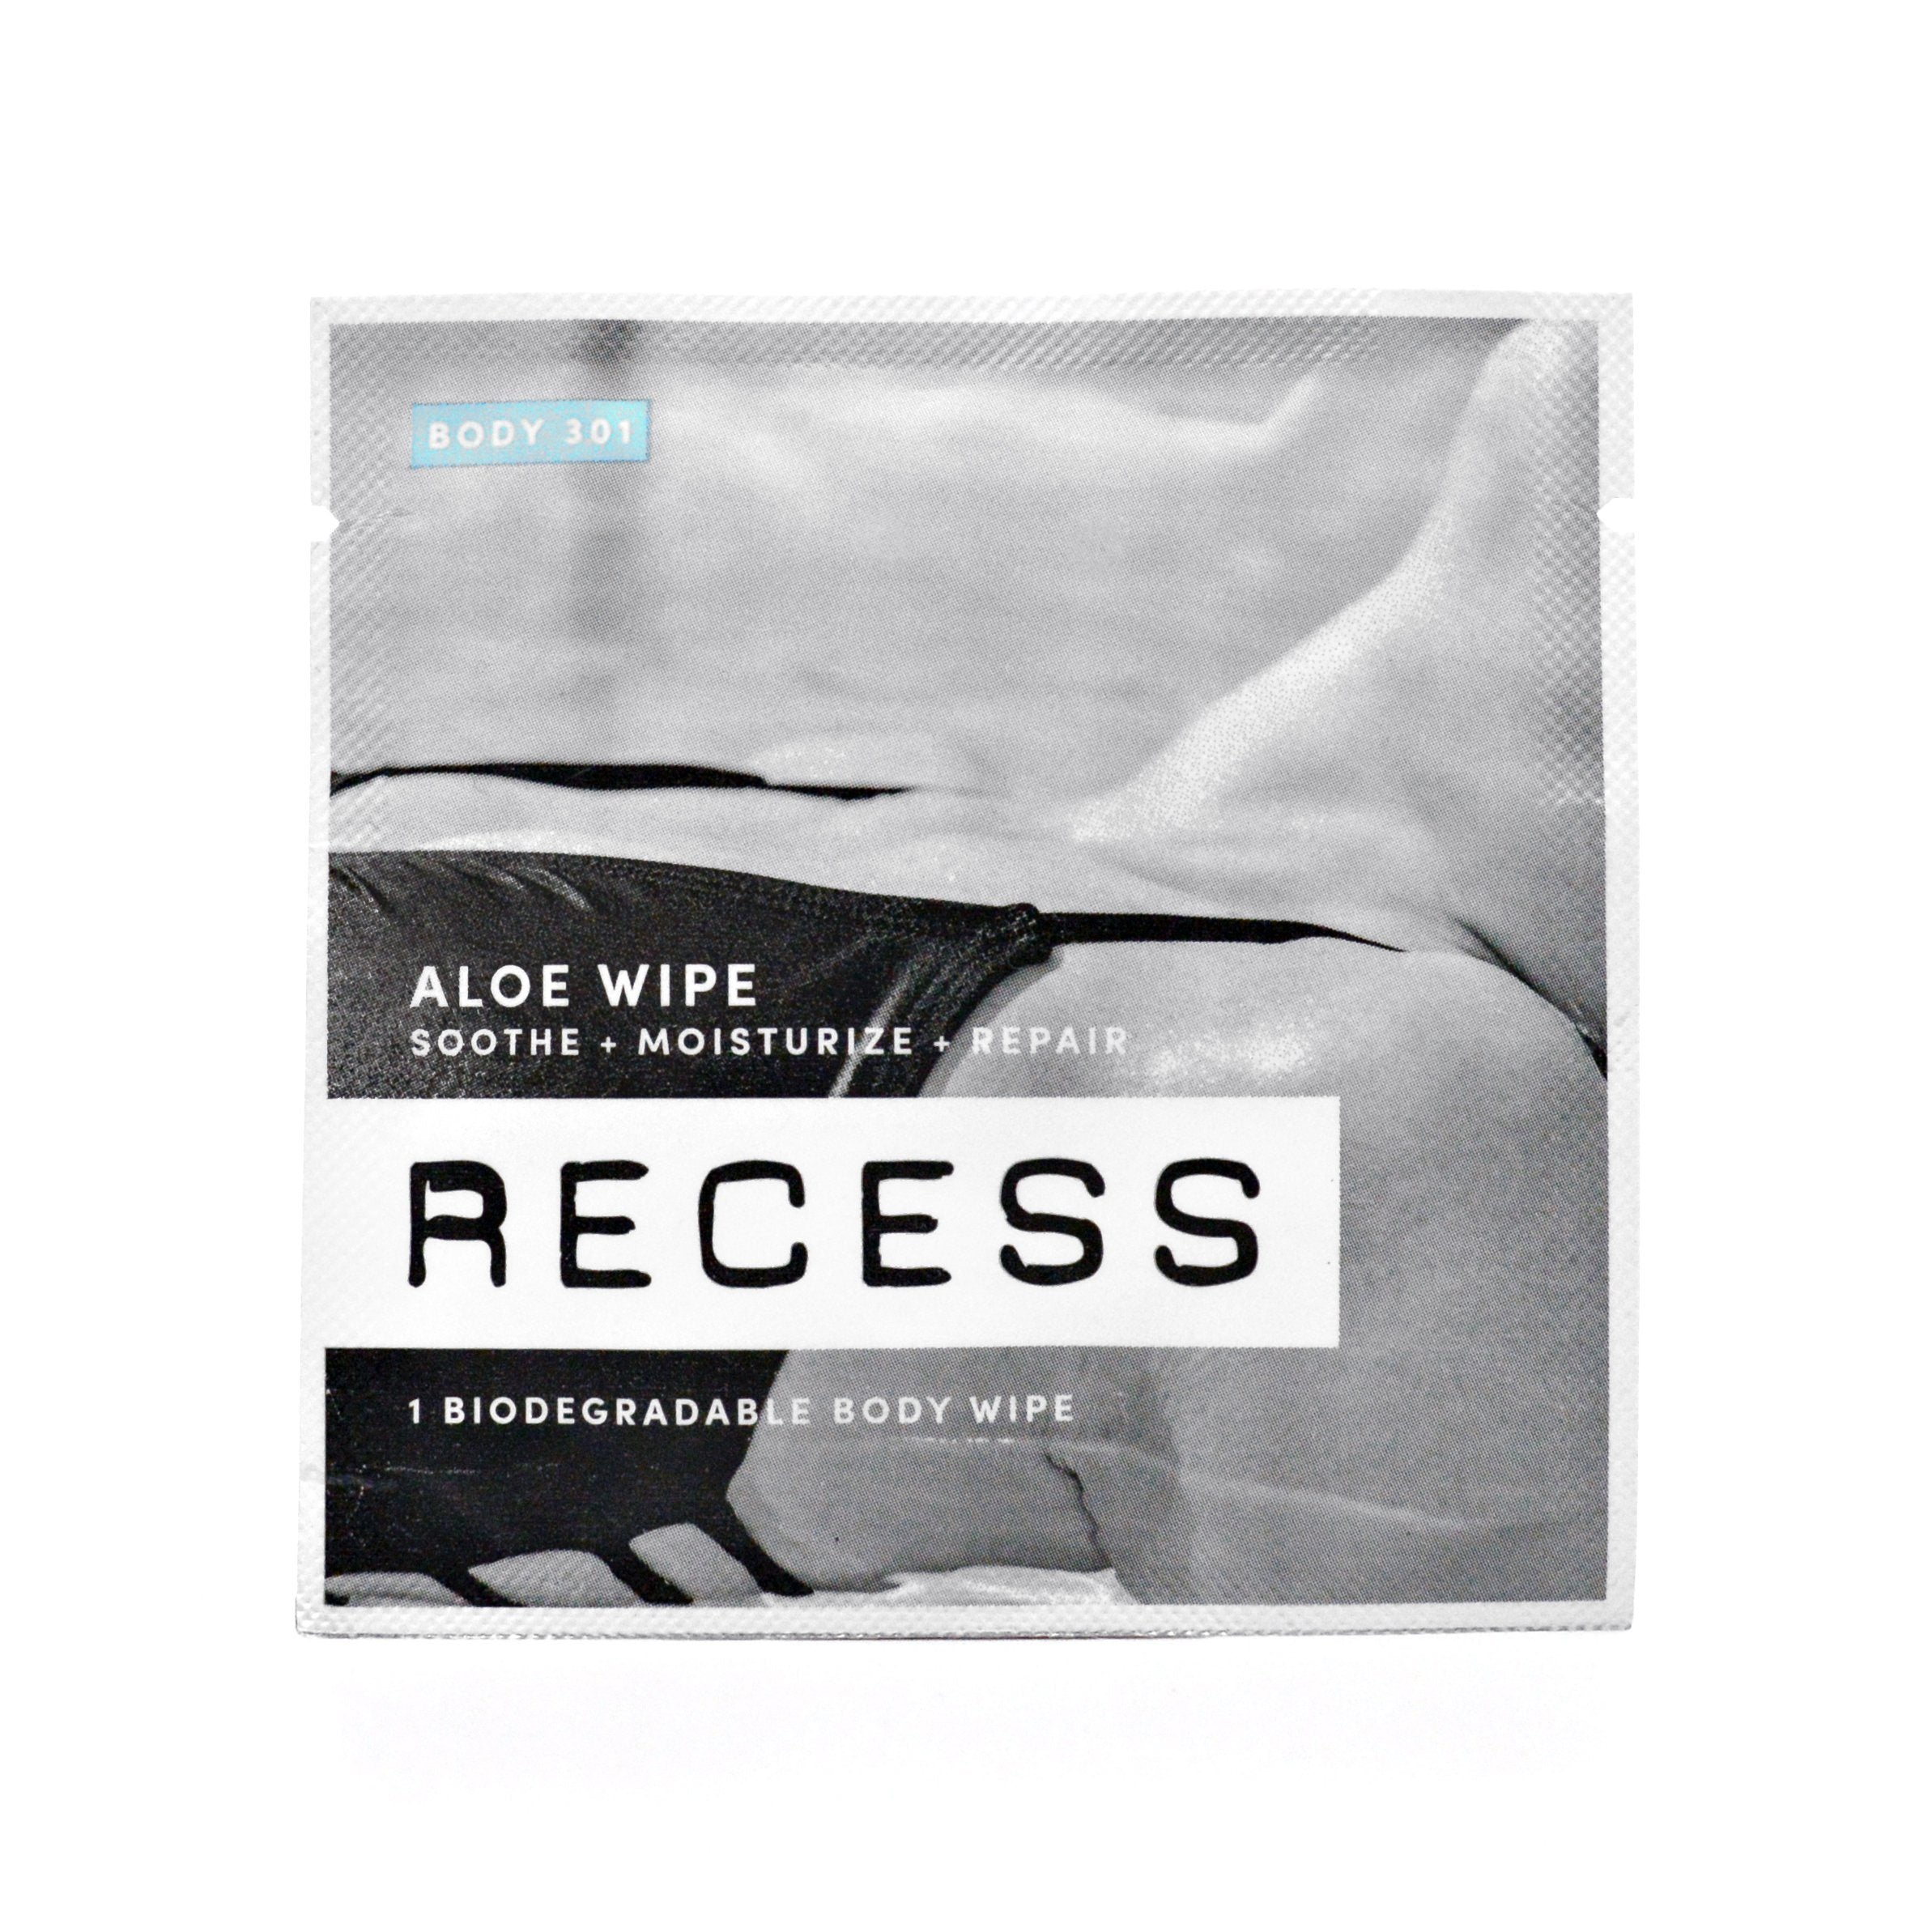 BODY 301: Aloe Wipes (Pack of 15)